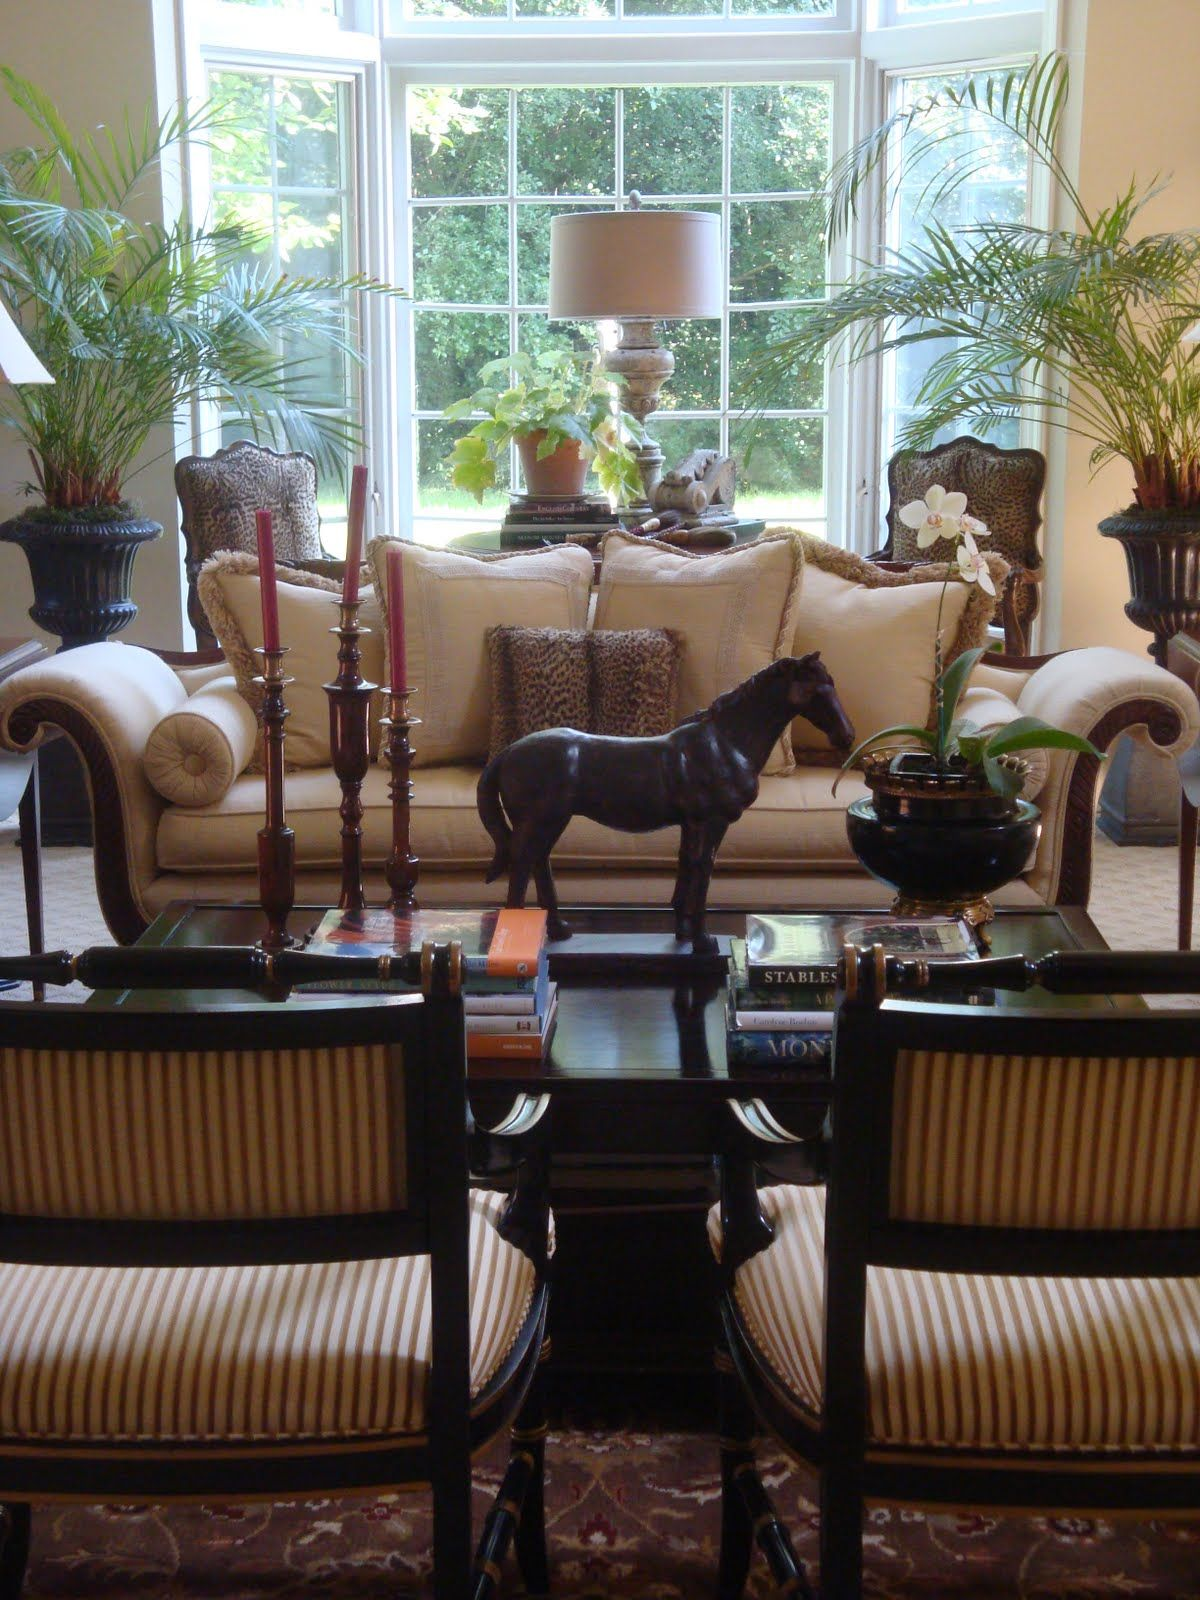 Nice looking sitting room with formal settings, antique accessories ...